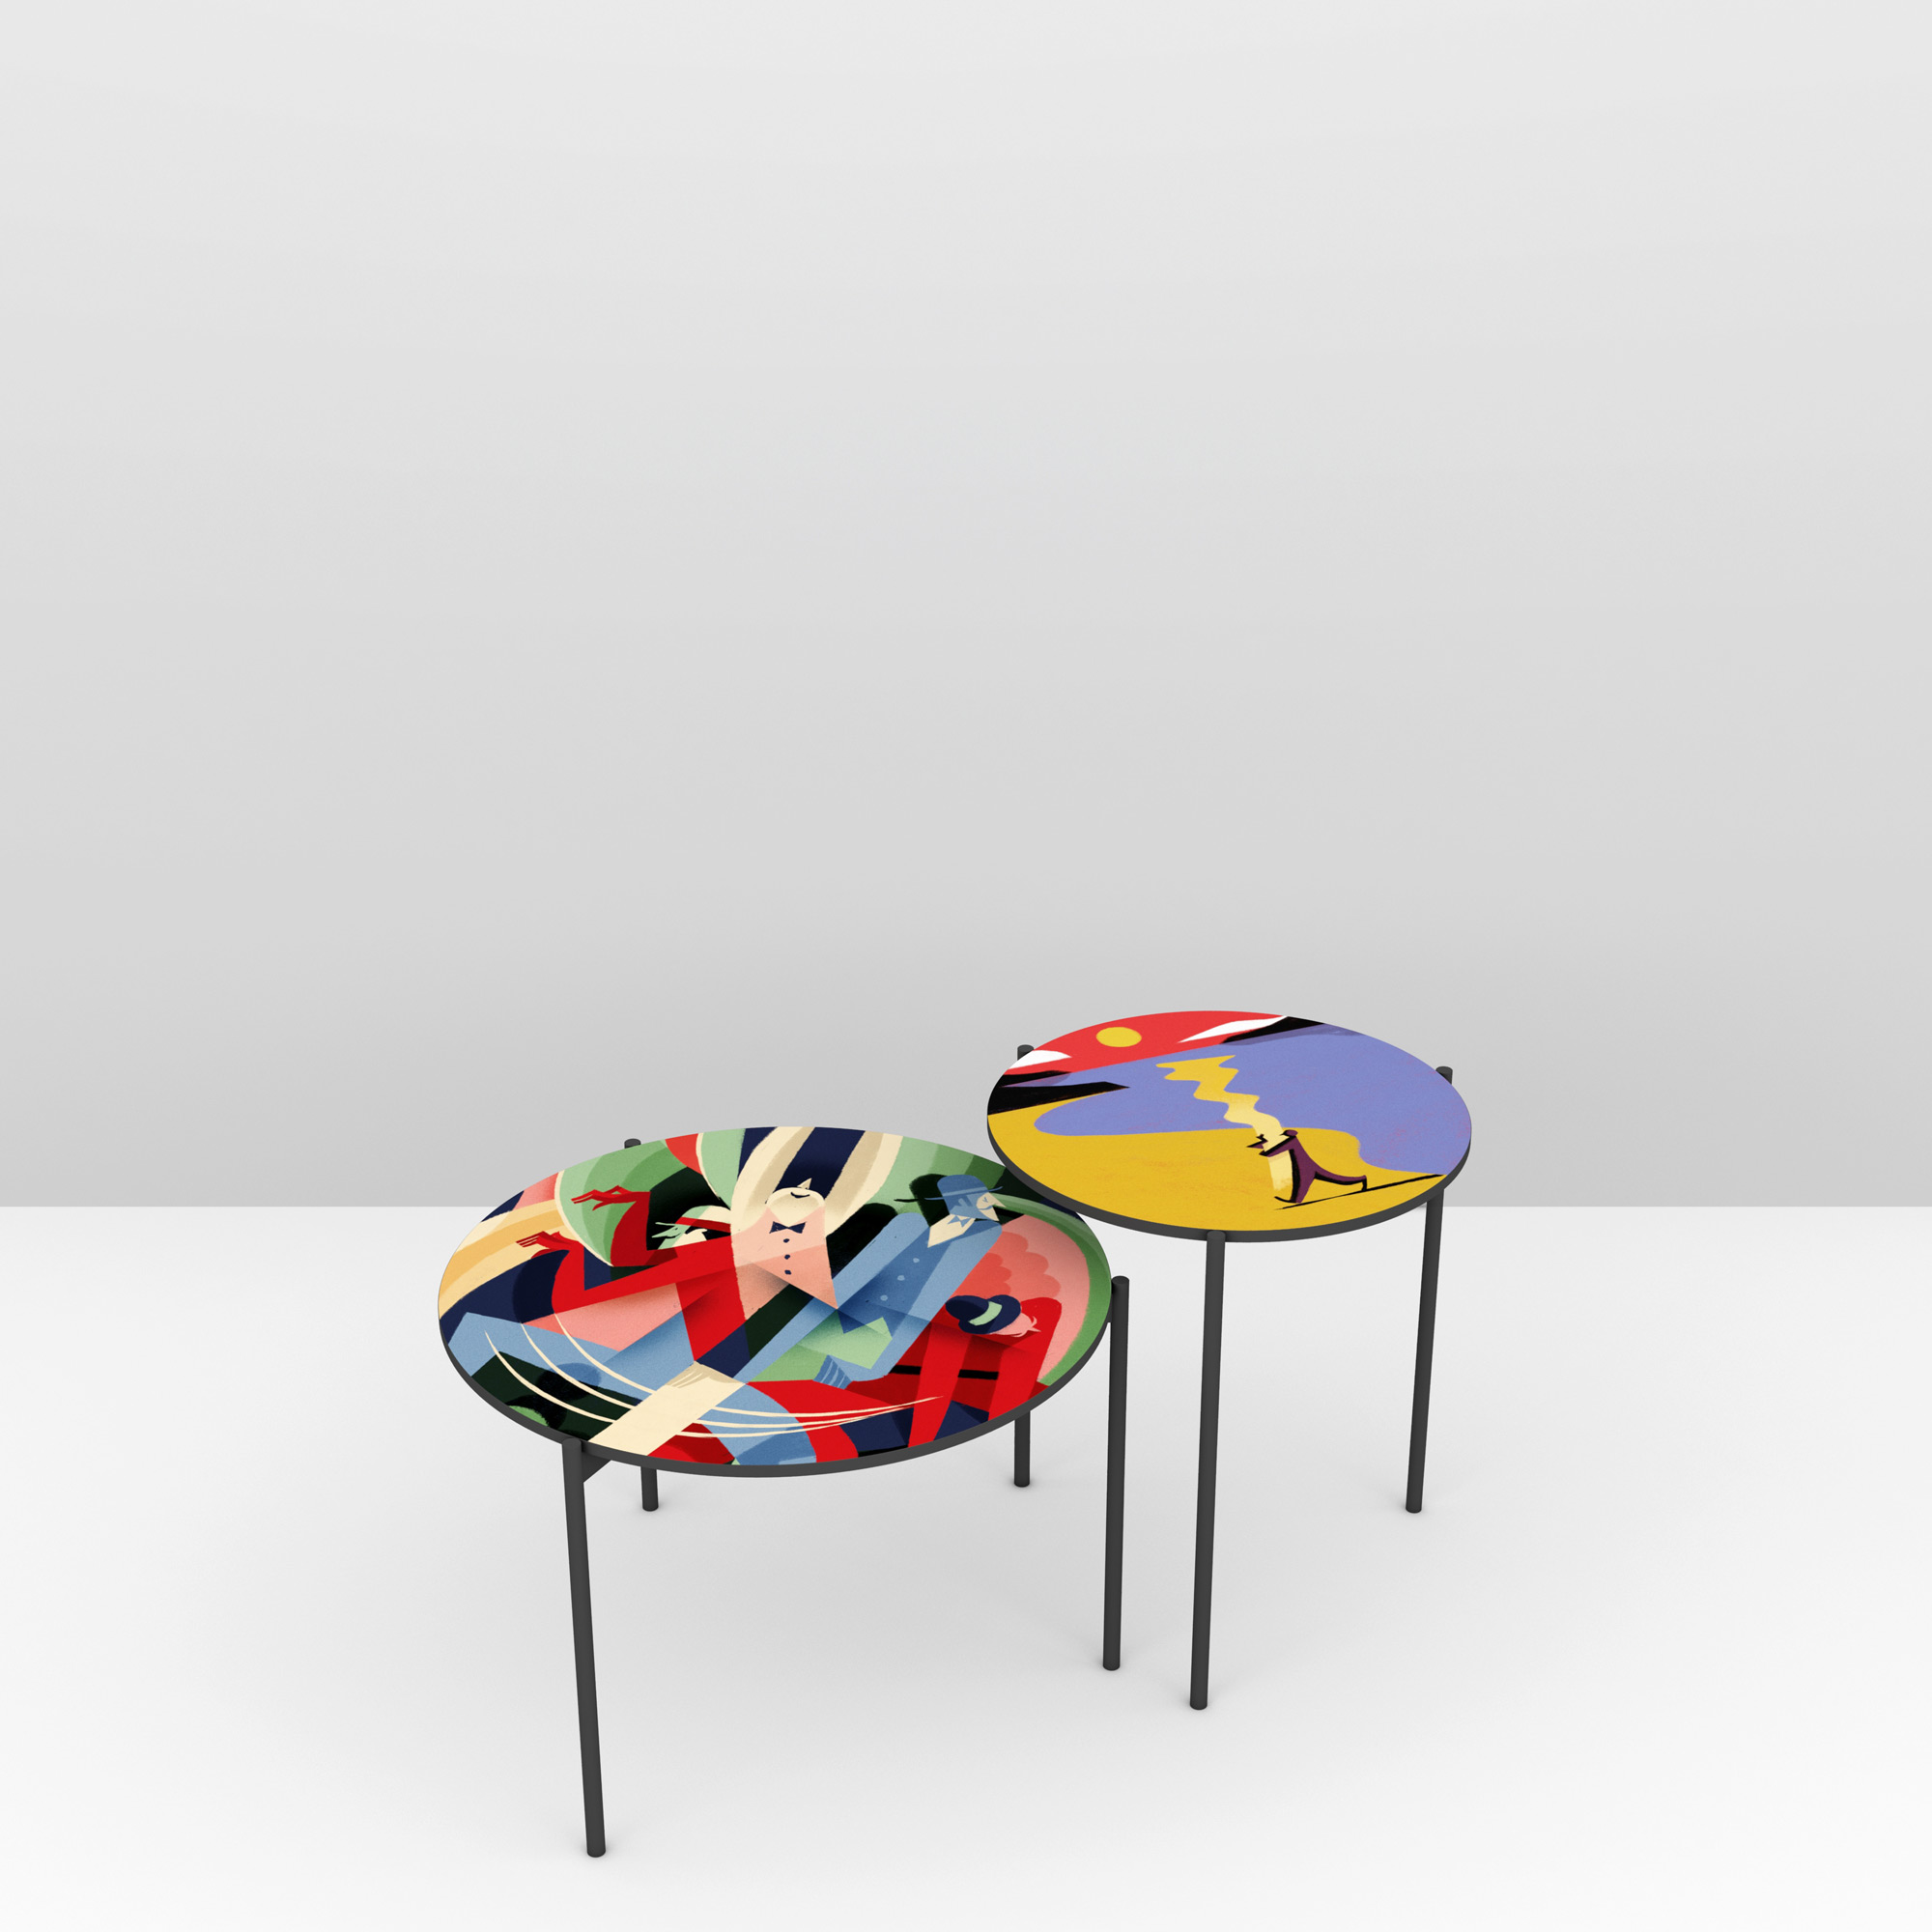 Pictoom Furniture Art Marogna Graphic Illustrator Furnishings Riccardo Guasco